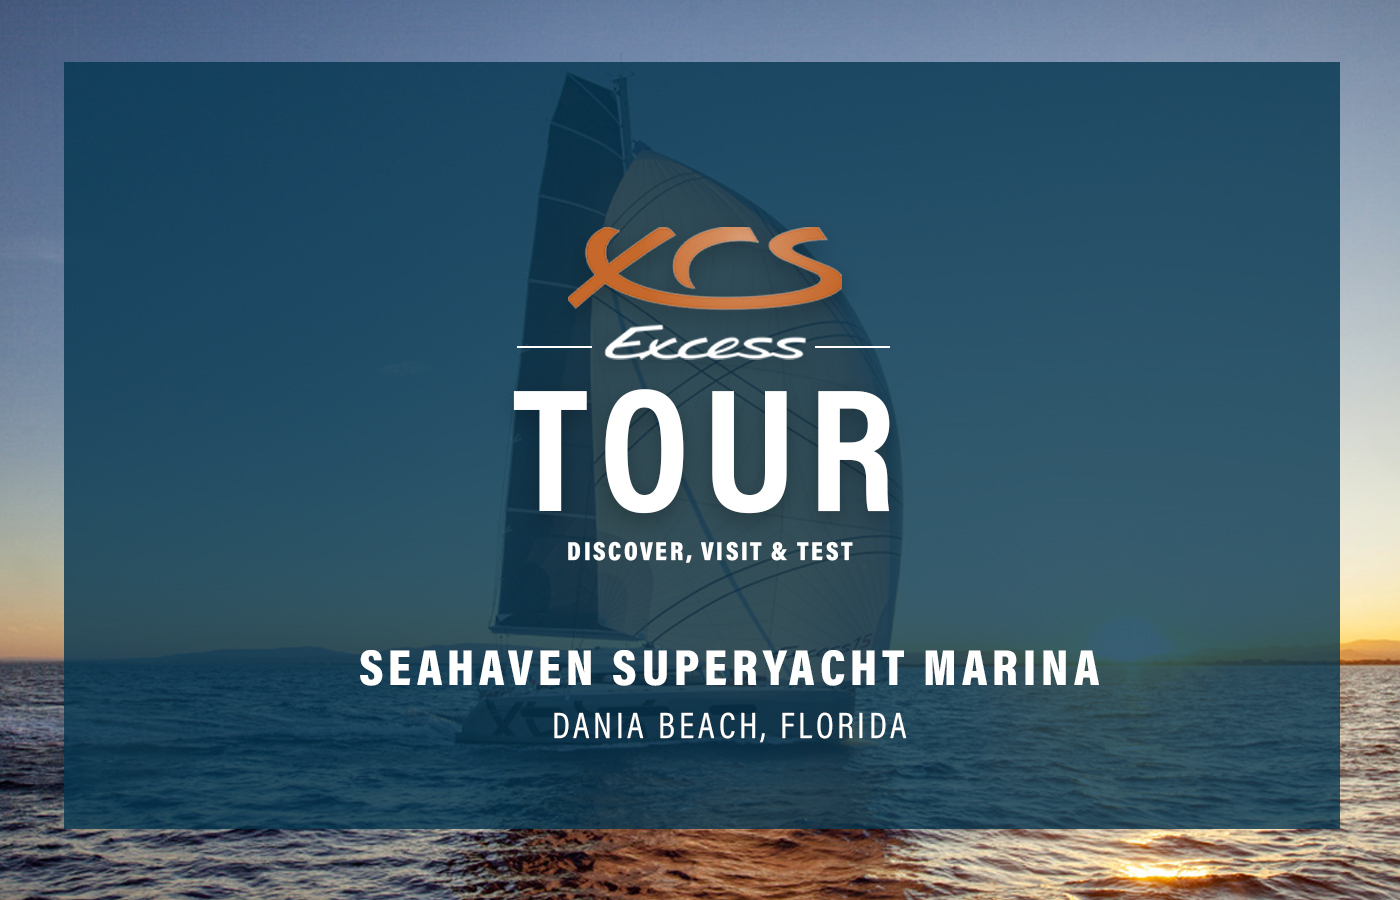 Excess Catamarans Private Tours [Open House]